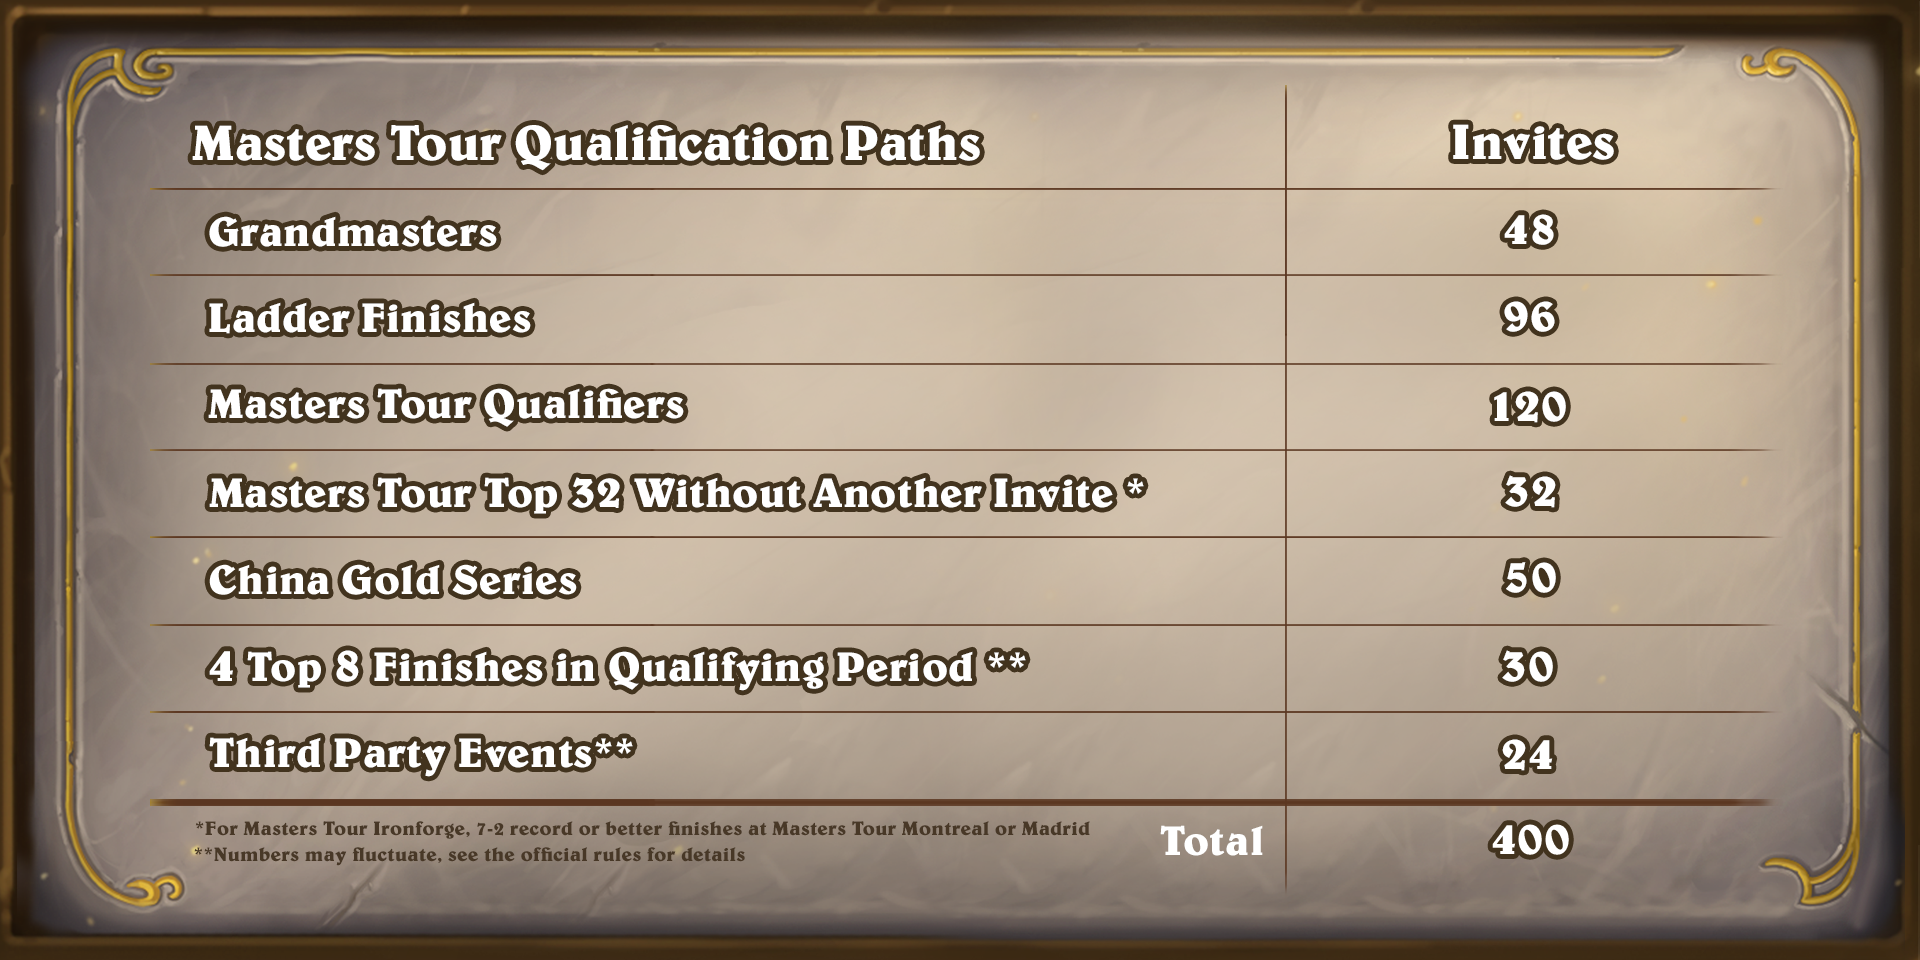 HS_MS_Invites_2021_PatchNotes_Inline_1920x1080.png